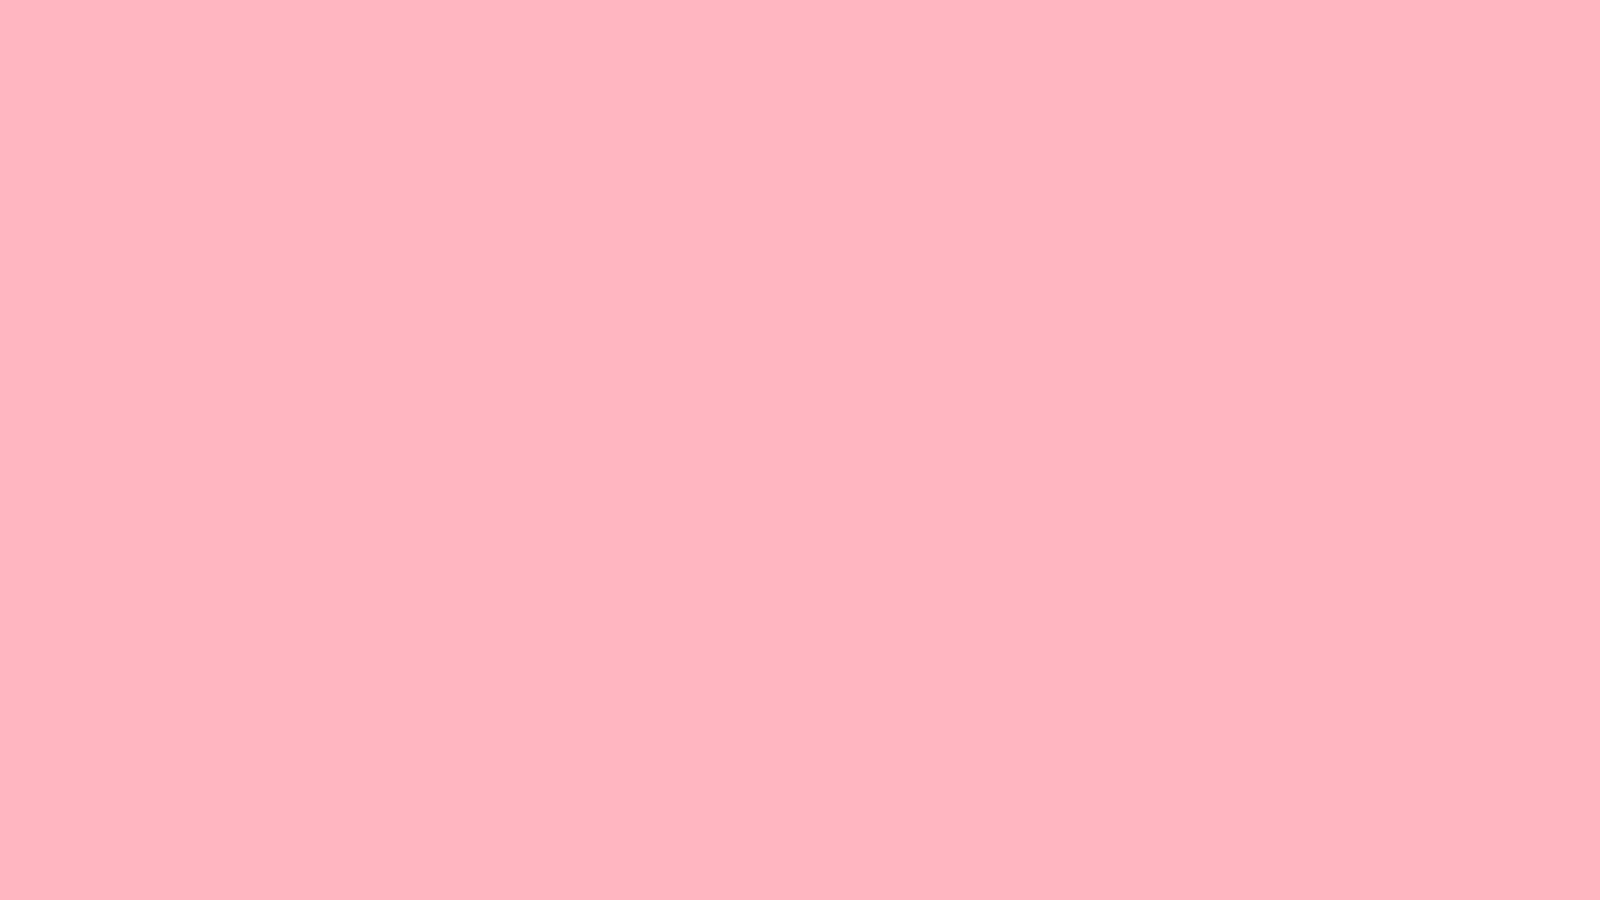 Light Pink Background Hd HD Wallpapers on picsfaircom 1600x900